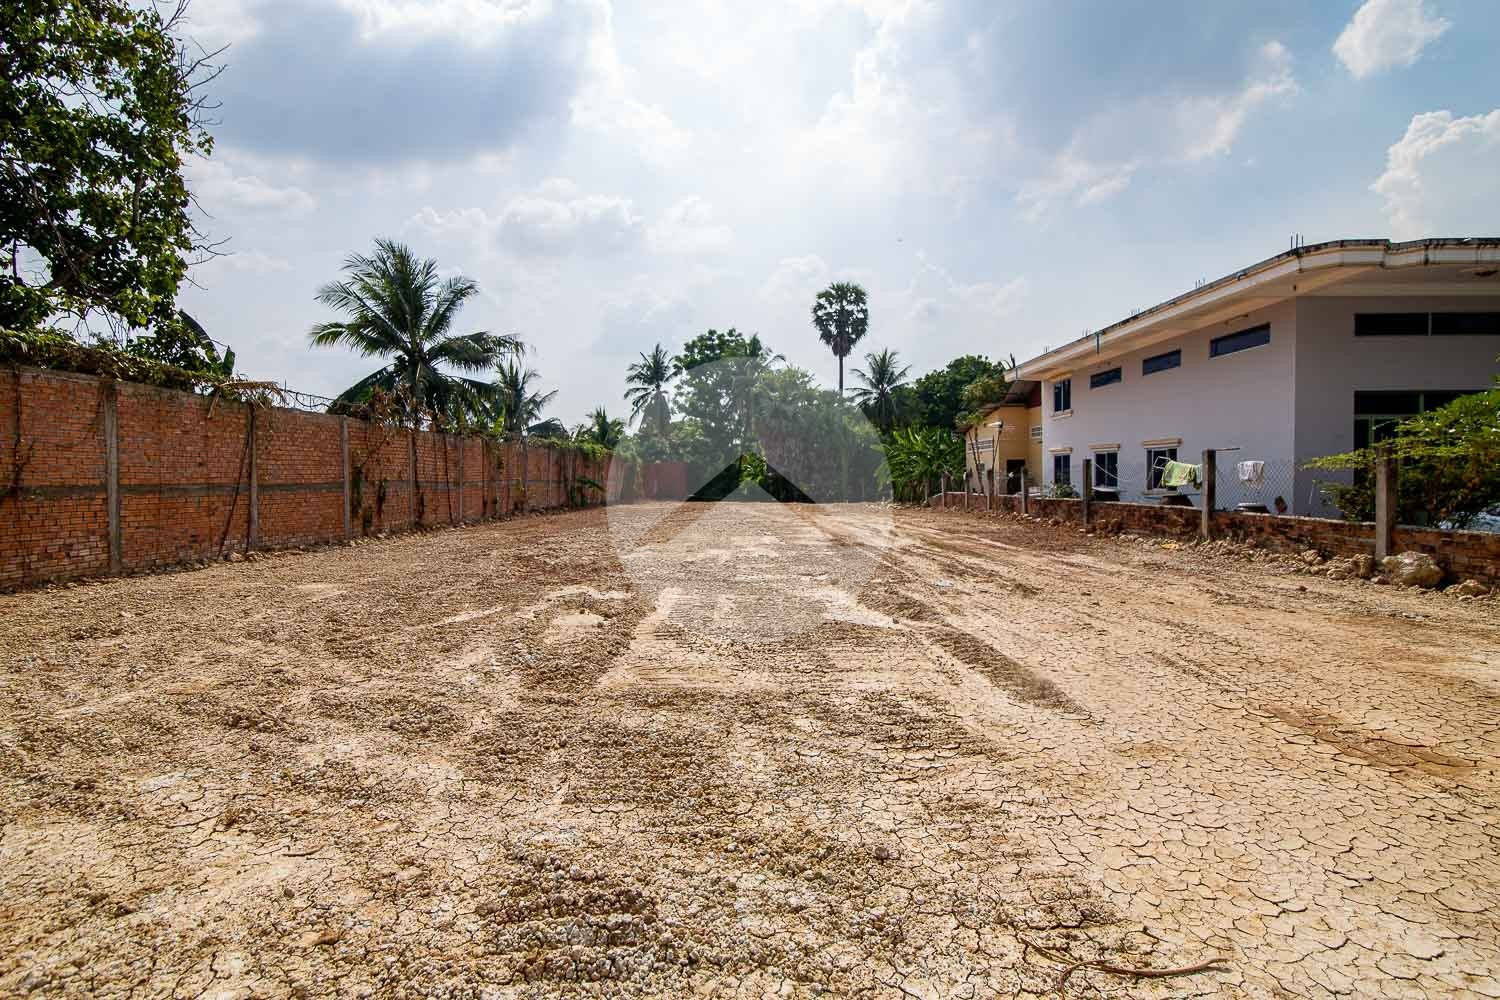 1079 Sqm Residential Land For Sale - Khan Chbar Ampov, Phnom Penh